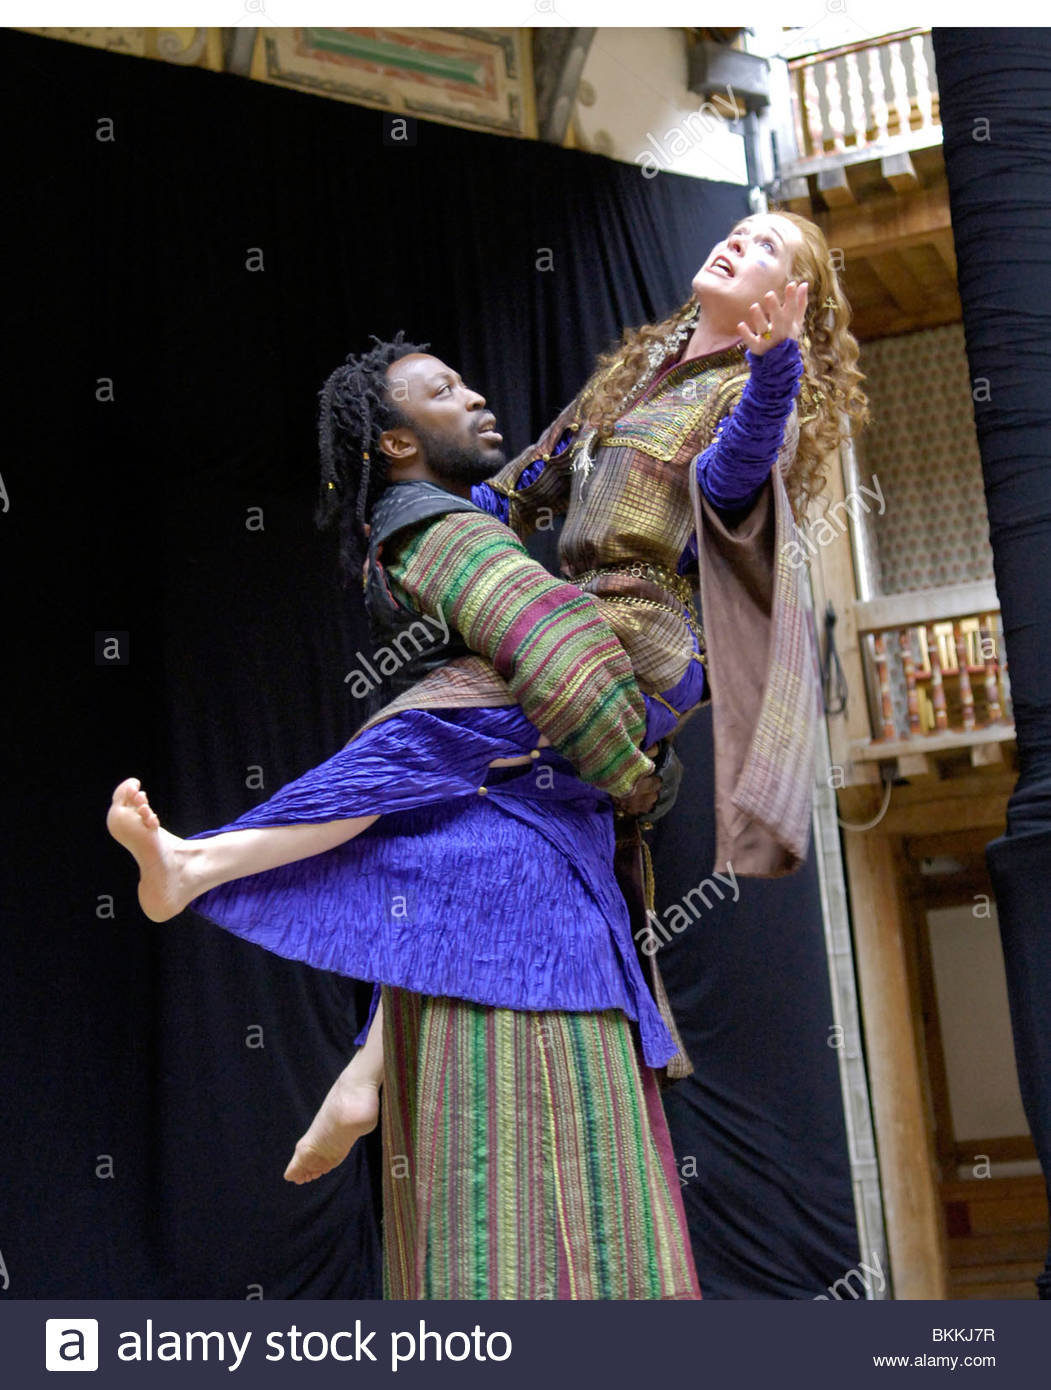 Titus Andronicus by William Shakespeare directed by Lucie Bailey. - Stock Image